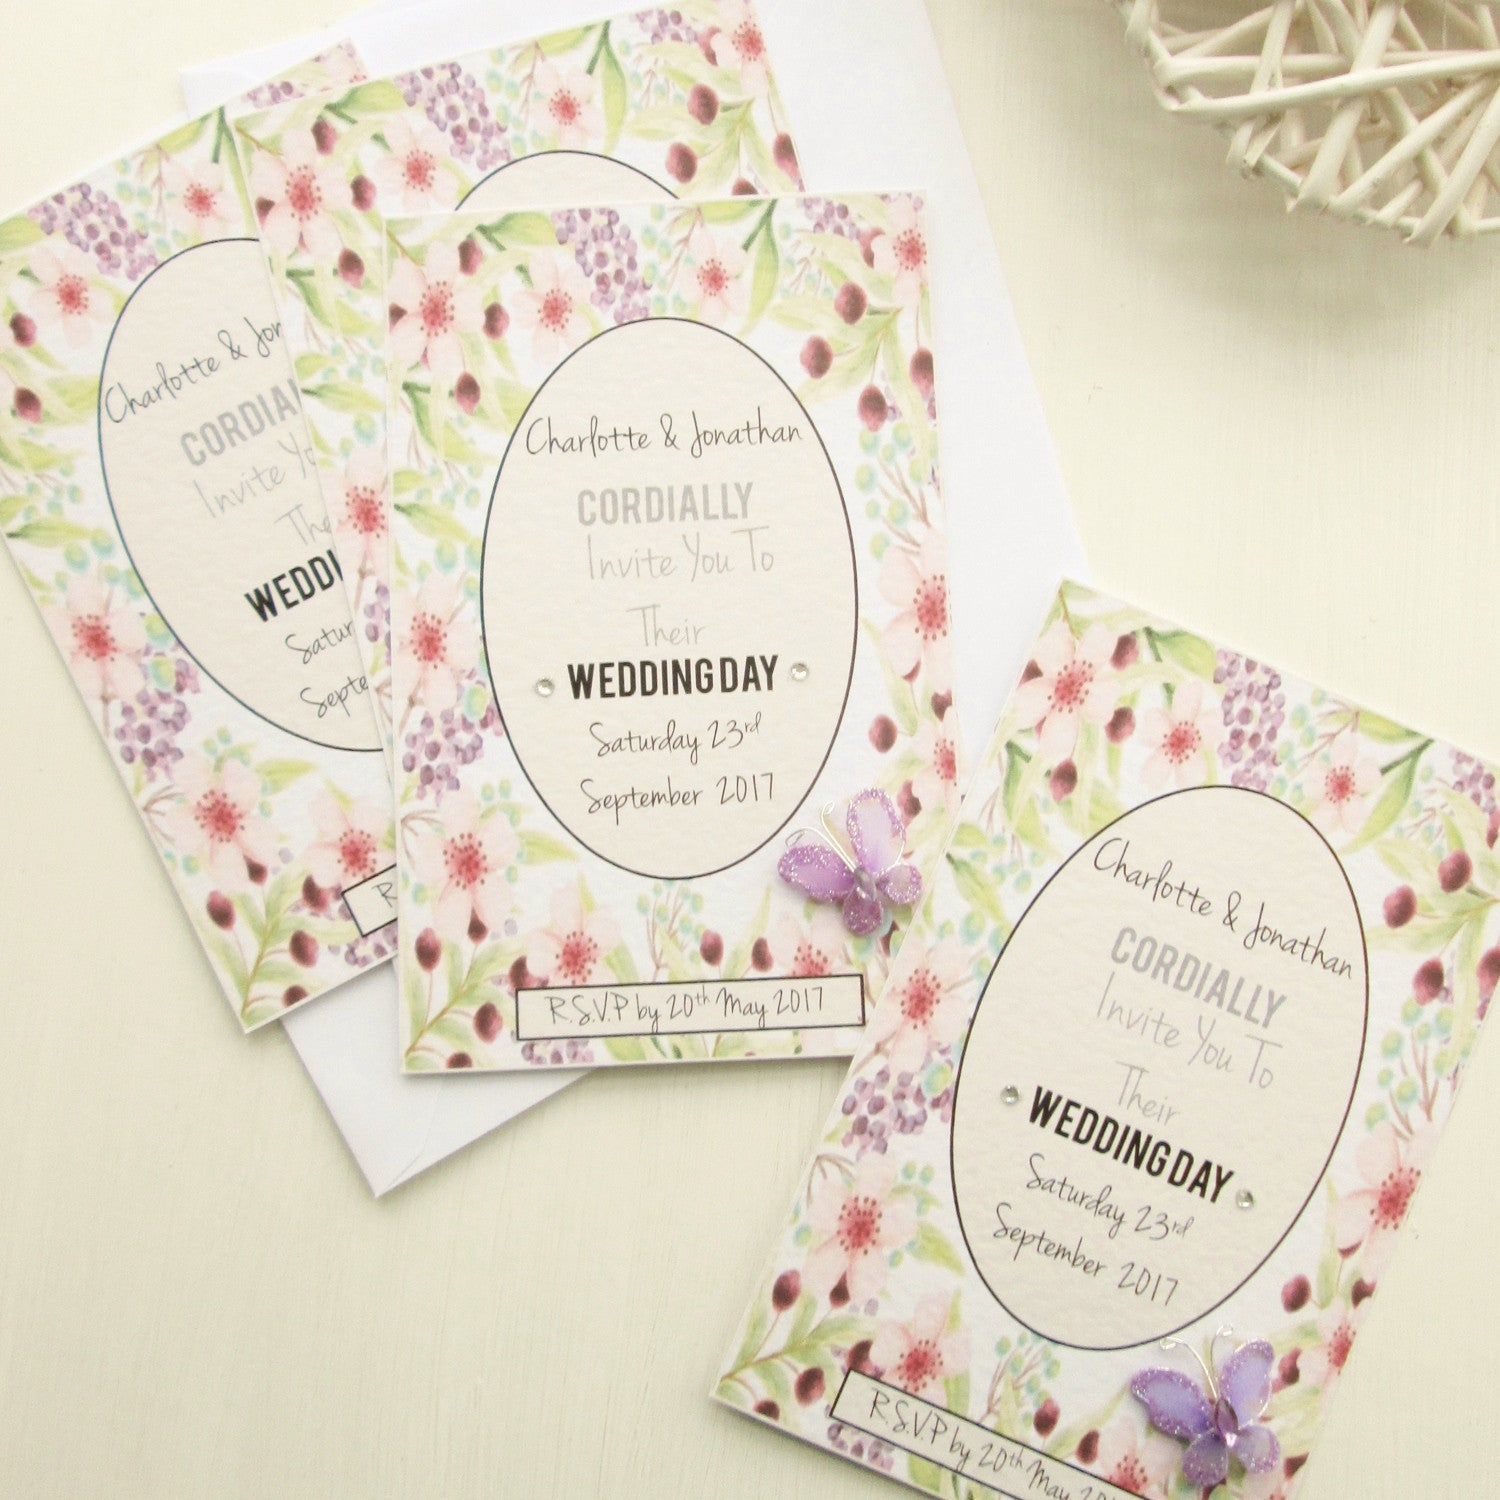 Personalised Wedding Invitation Cards Spring Garden Design Good